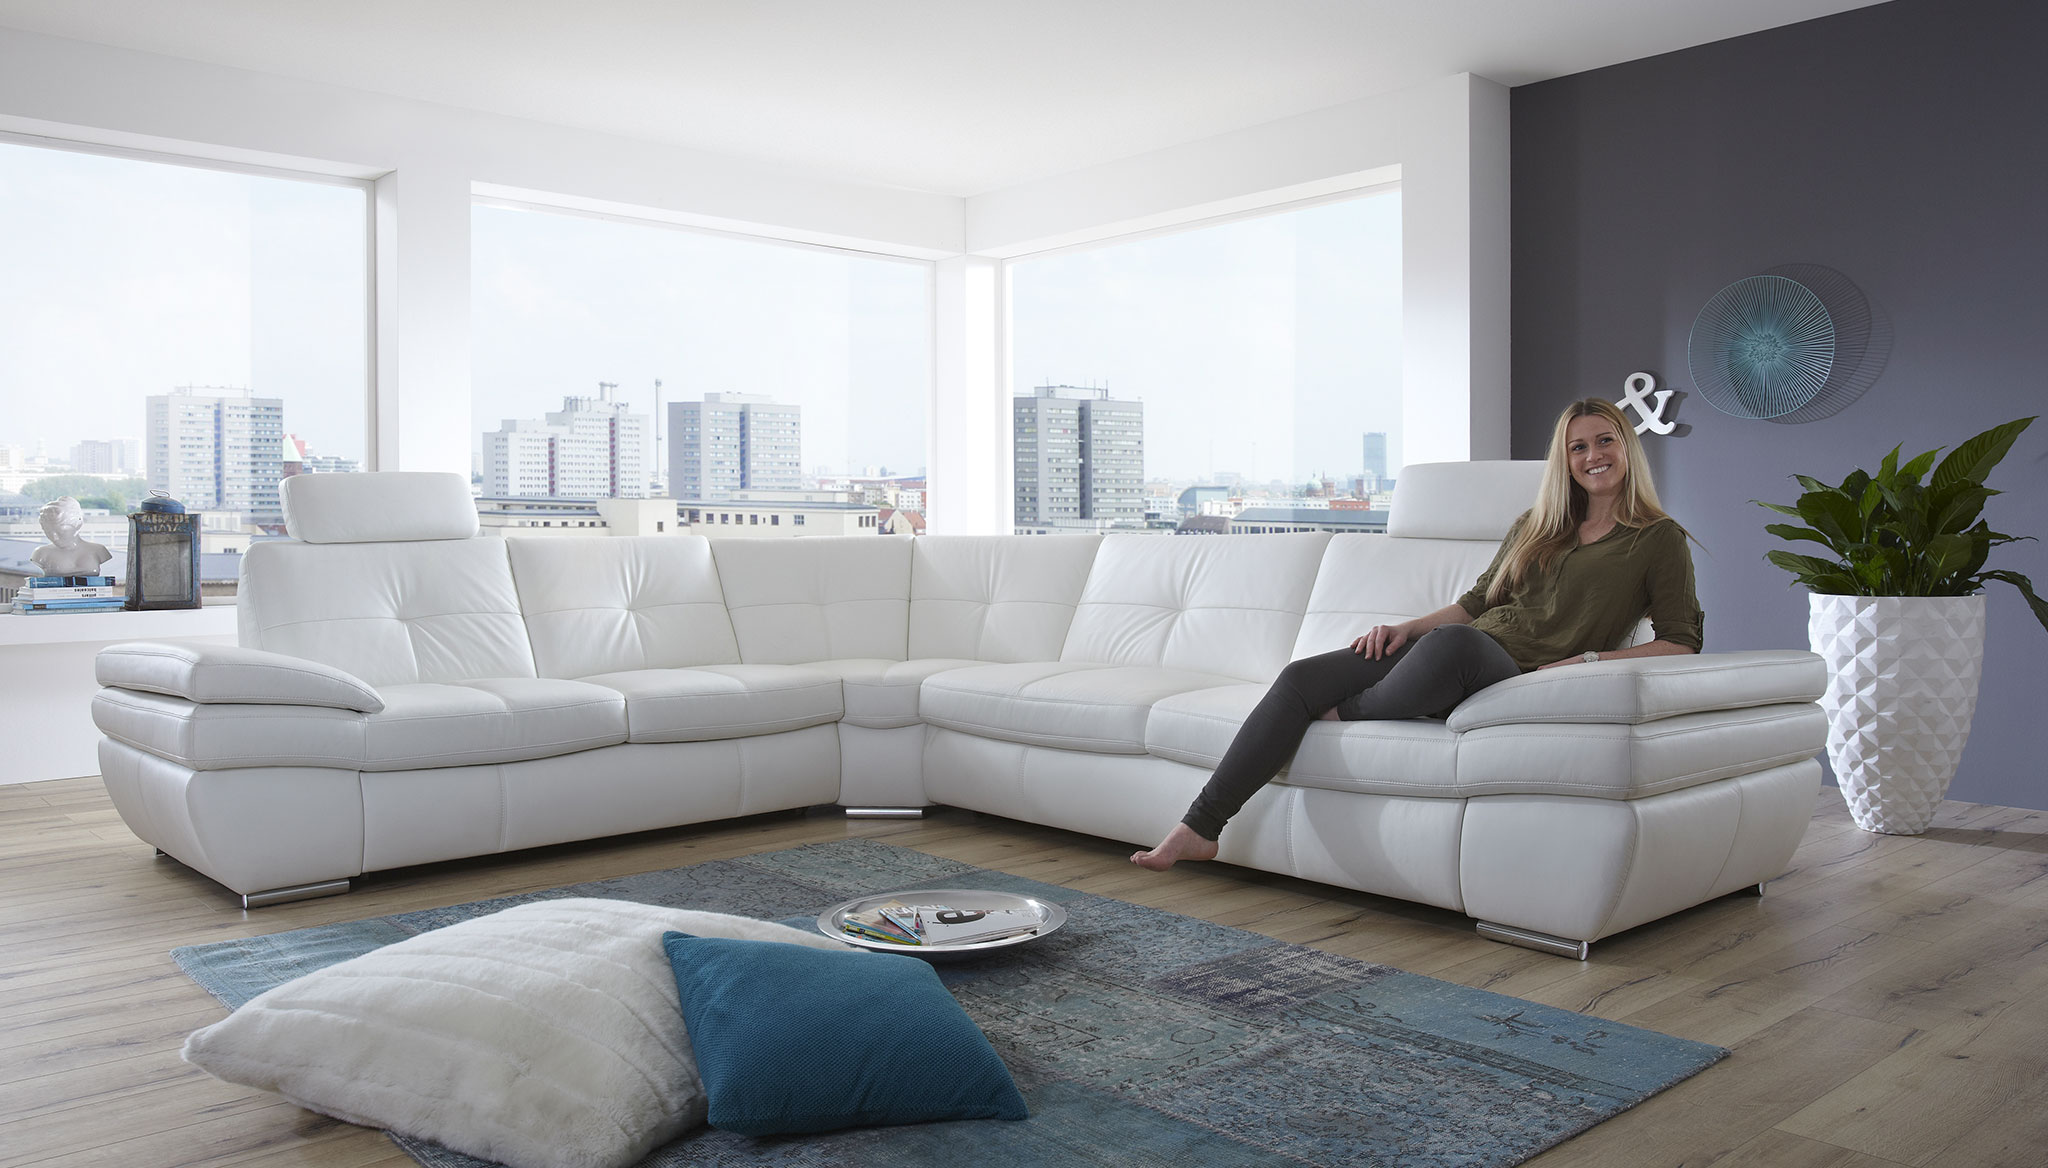 European Sectional Sofas Large Sectional Sofas Couches